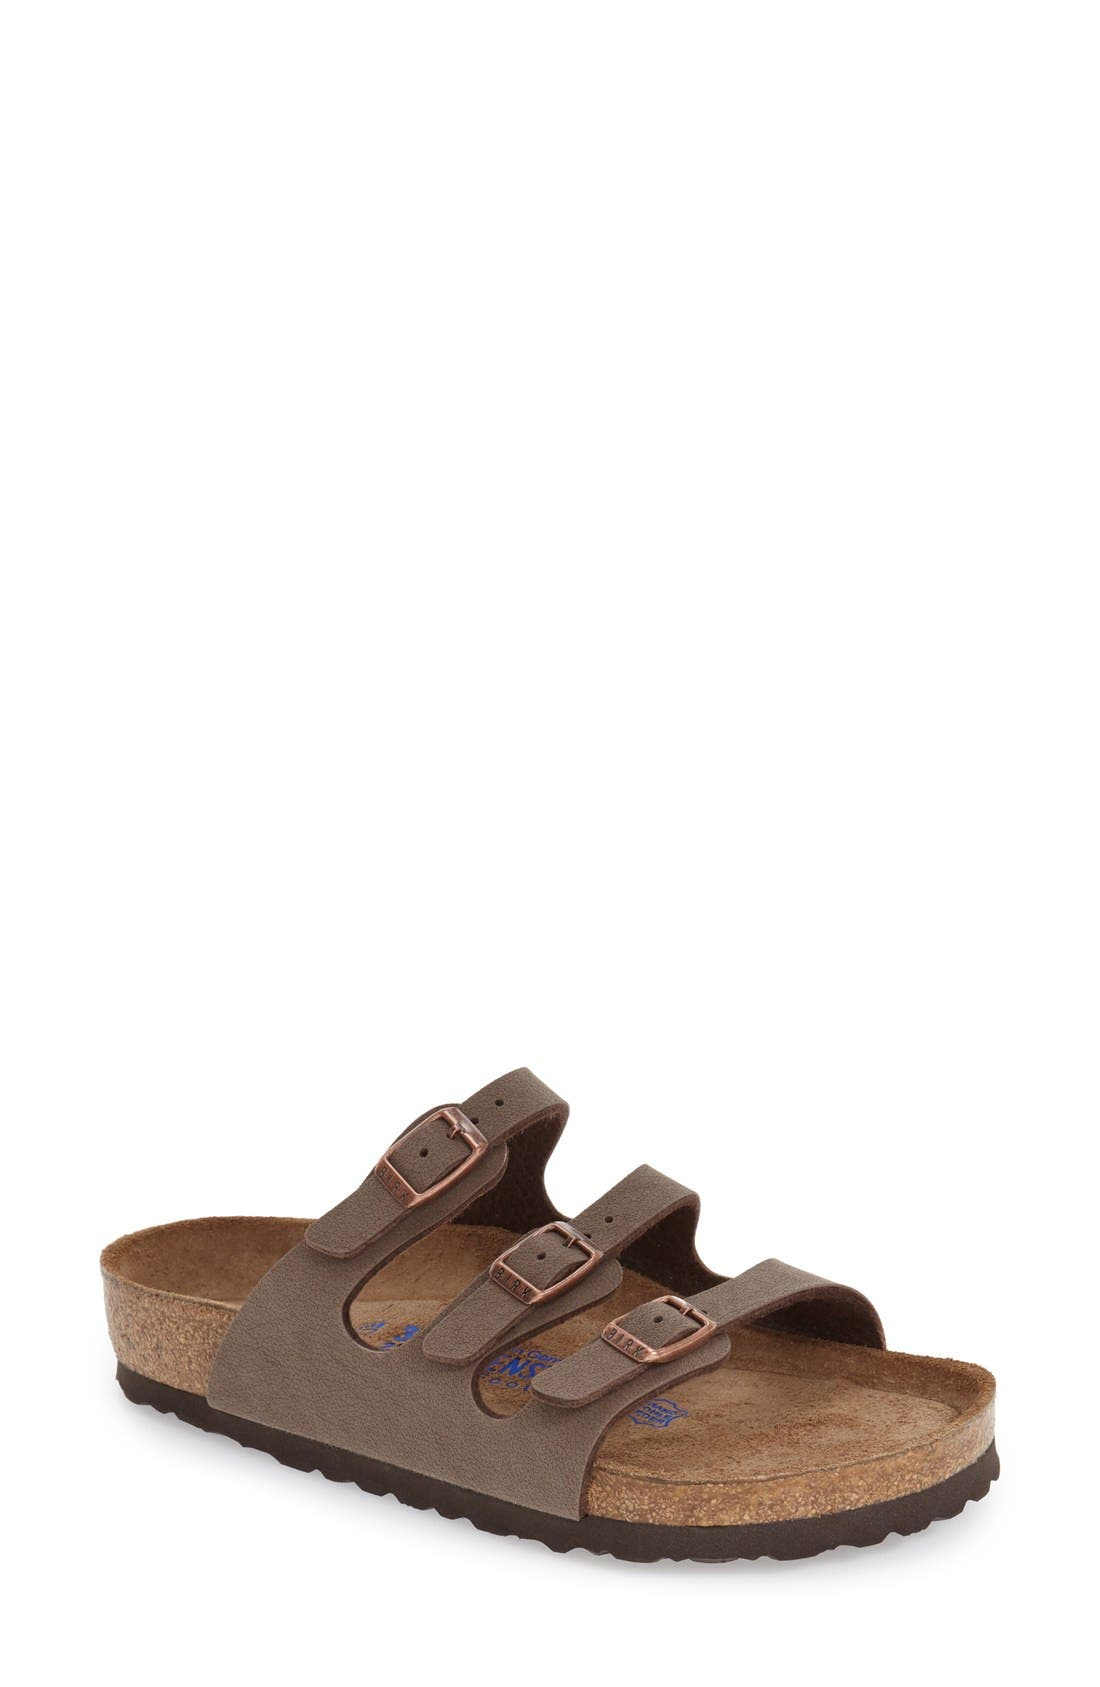 Alternate Image 1 Selected - Birkenstock 'Florida Birkibuc' Soft Footbed Sandal (Women)